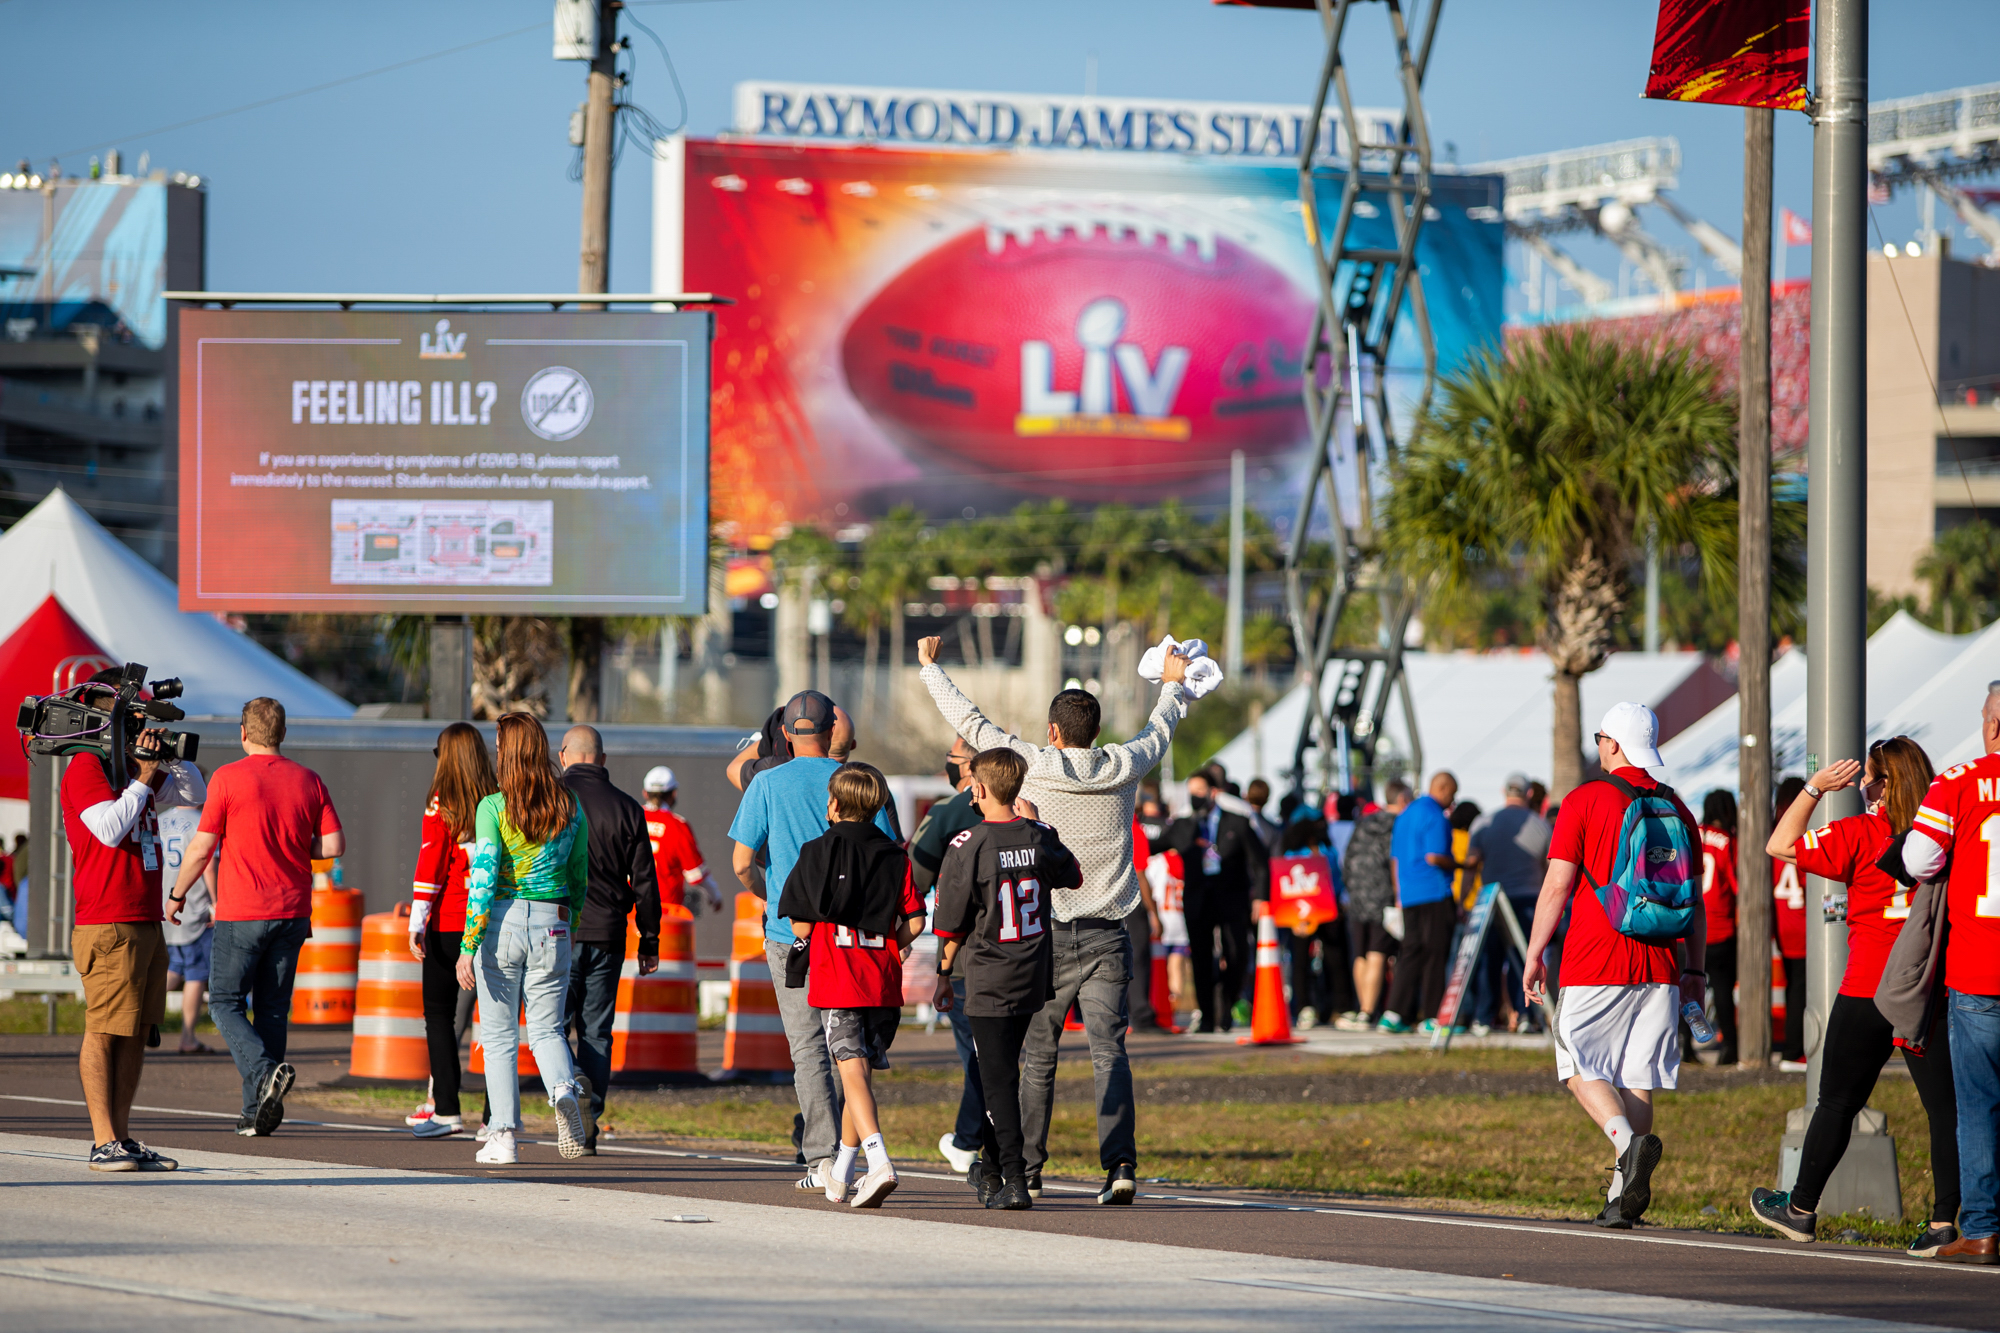 Feb 7, 2021; Tampa, Florida, USA; Fans approach Raymond James Stadium under COVID precautionary signage before Super Bowl LV between the Kansas City Chiefs and the Tampa Bay Buccaneers in Tampa, FL.  / Mary Holt-USA TODAY Sports/File Photo